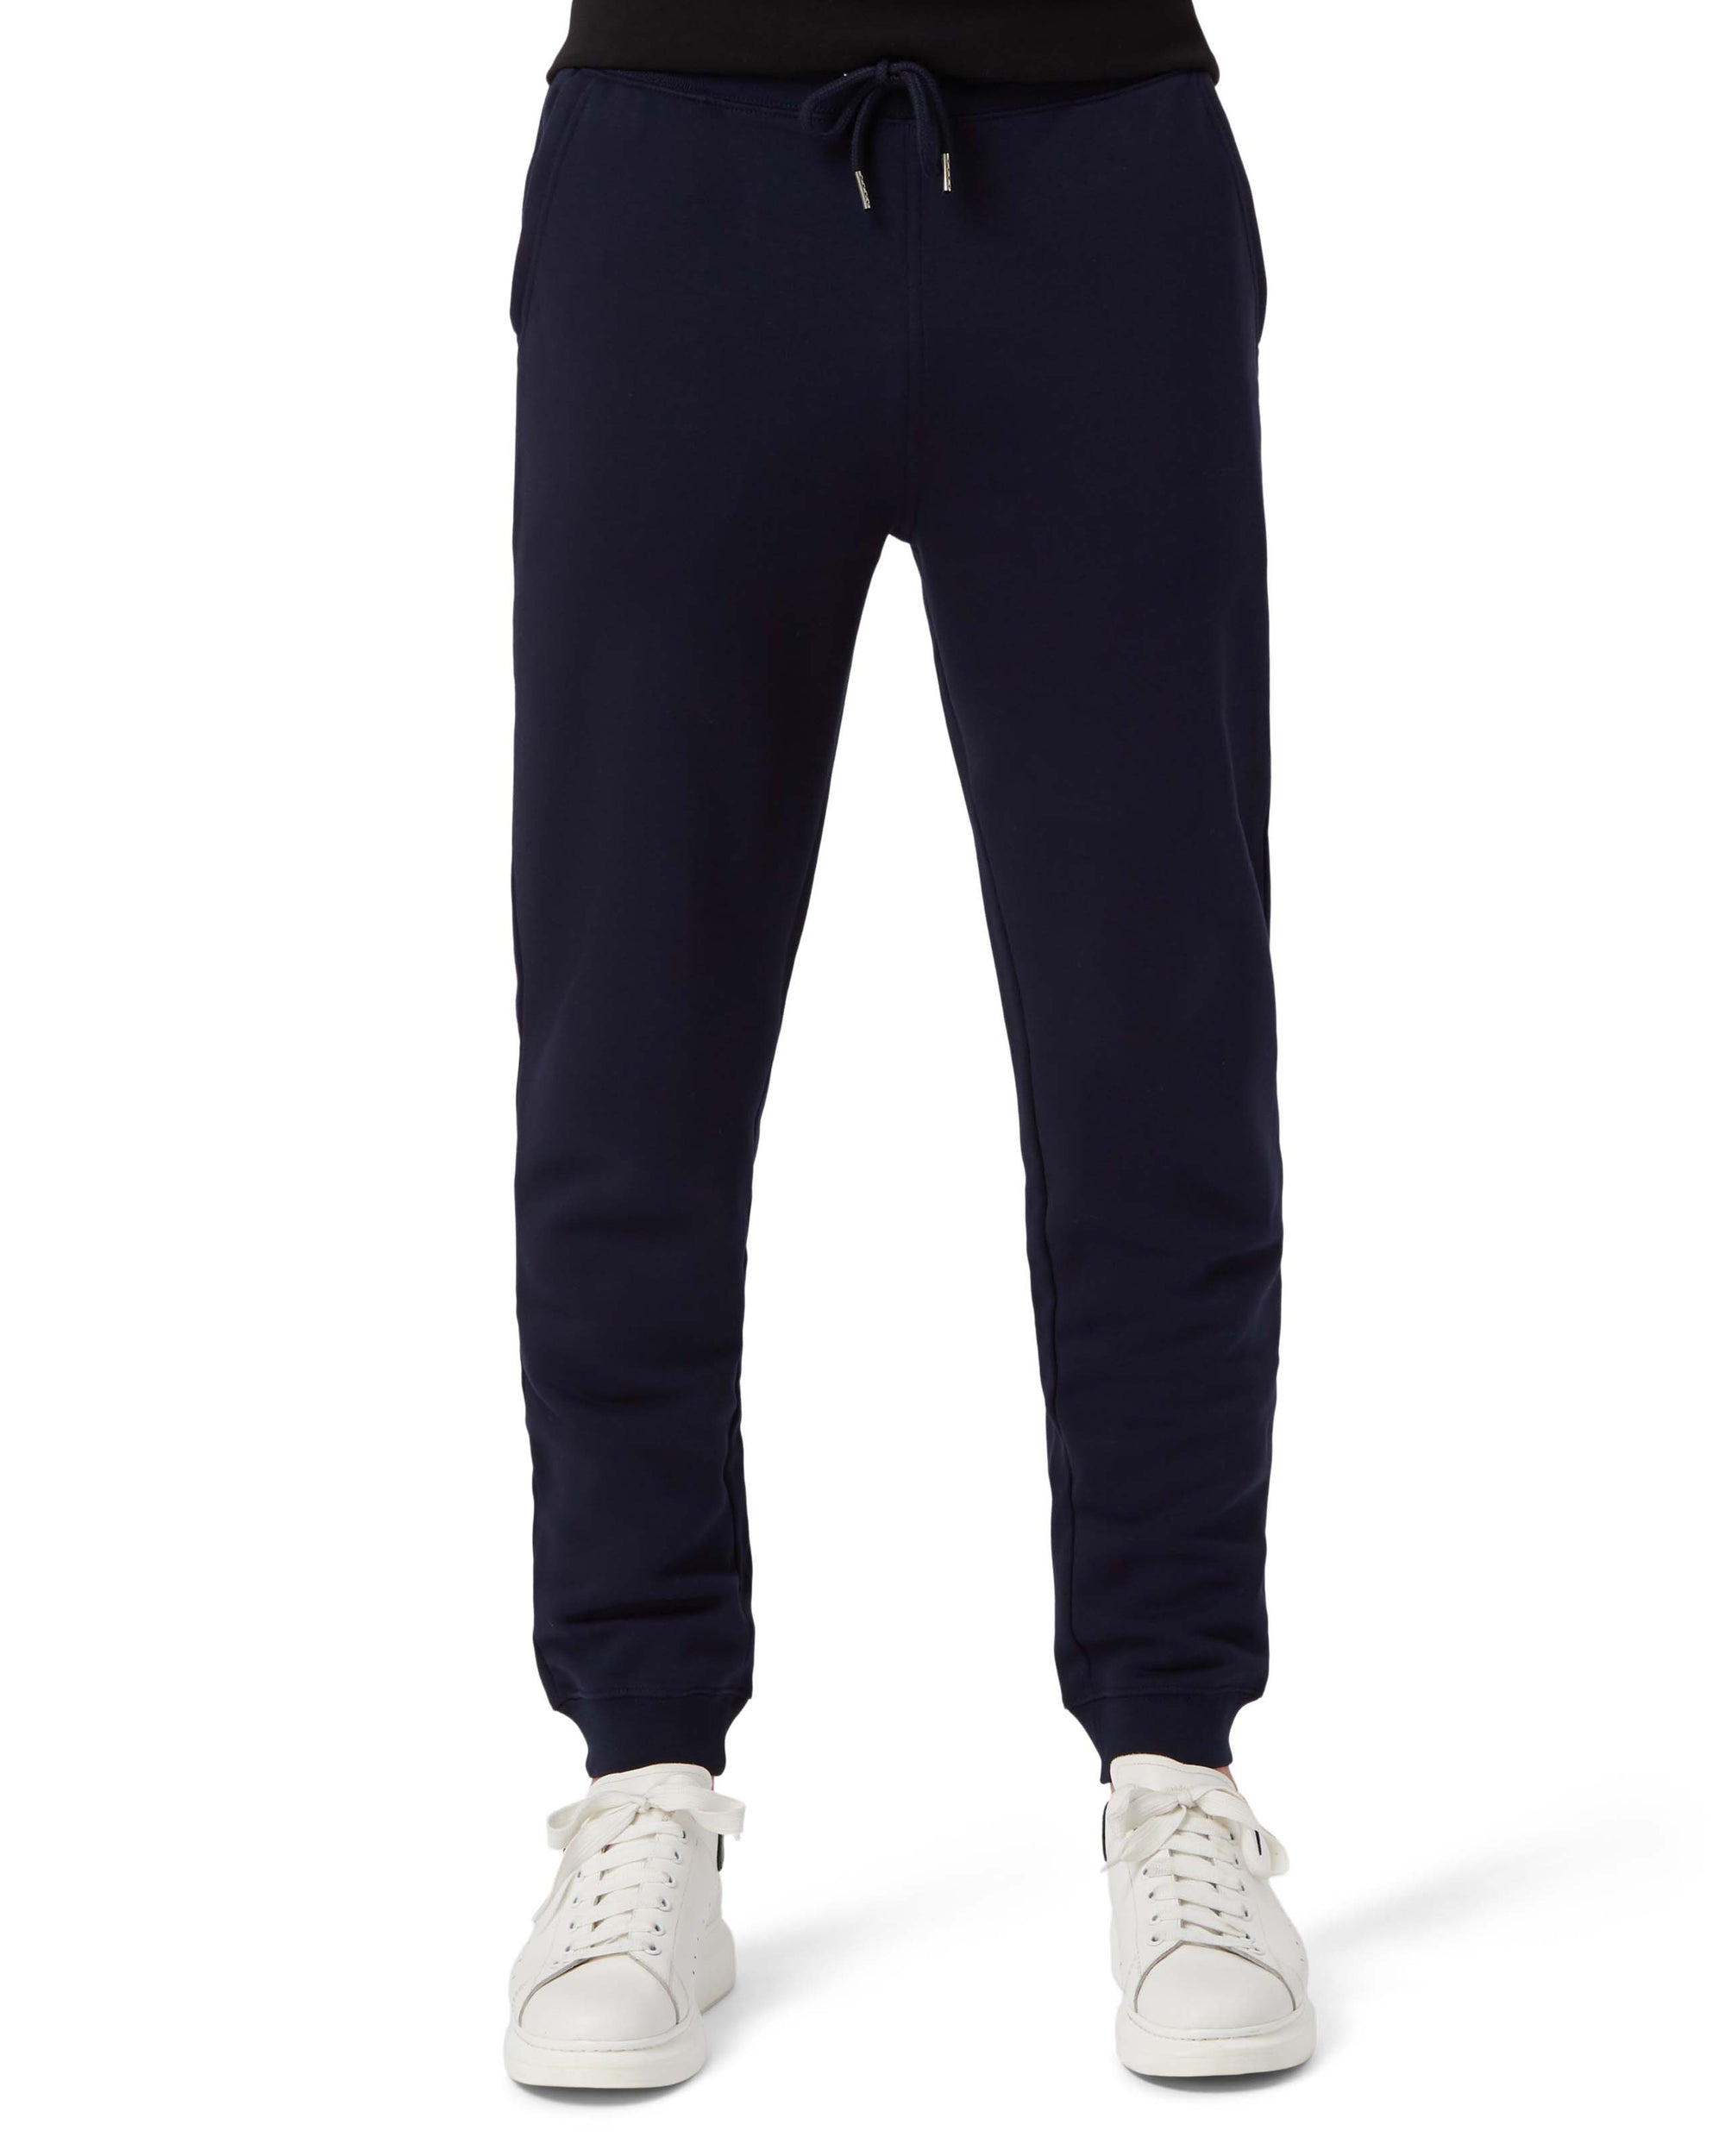 mens navy sweatpants